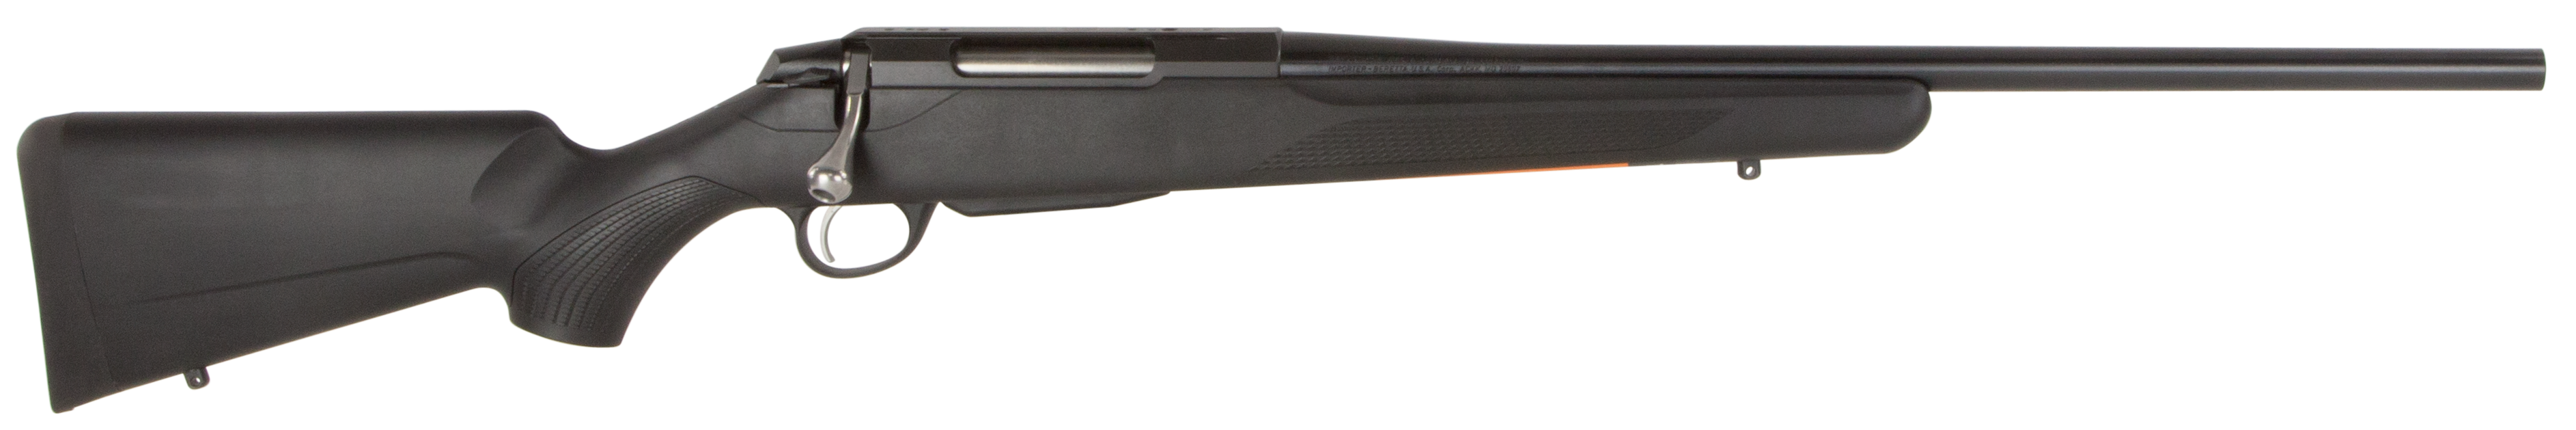 Tikka T3x Lite Compact 204 Ruger 20